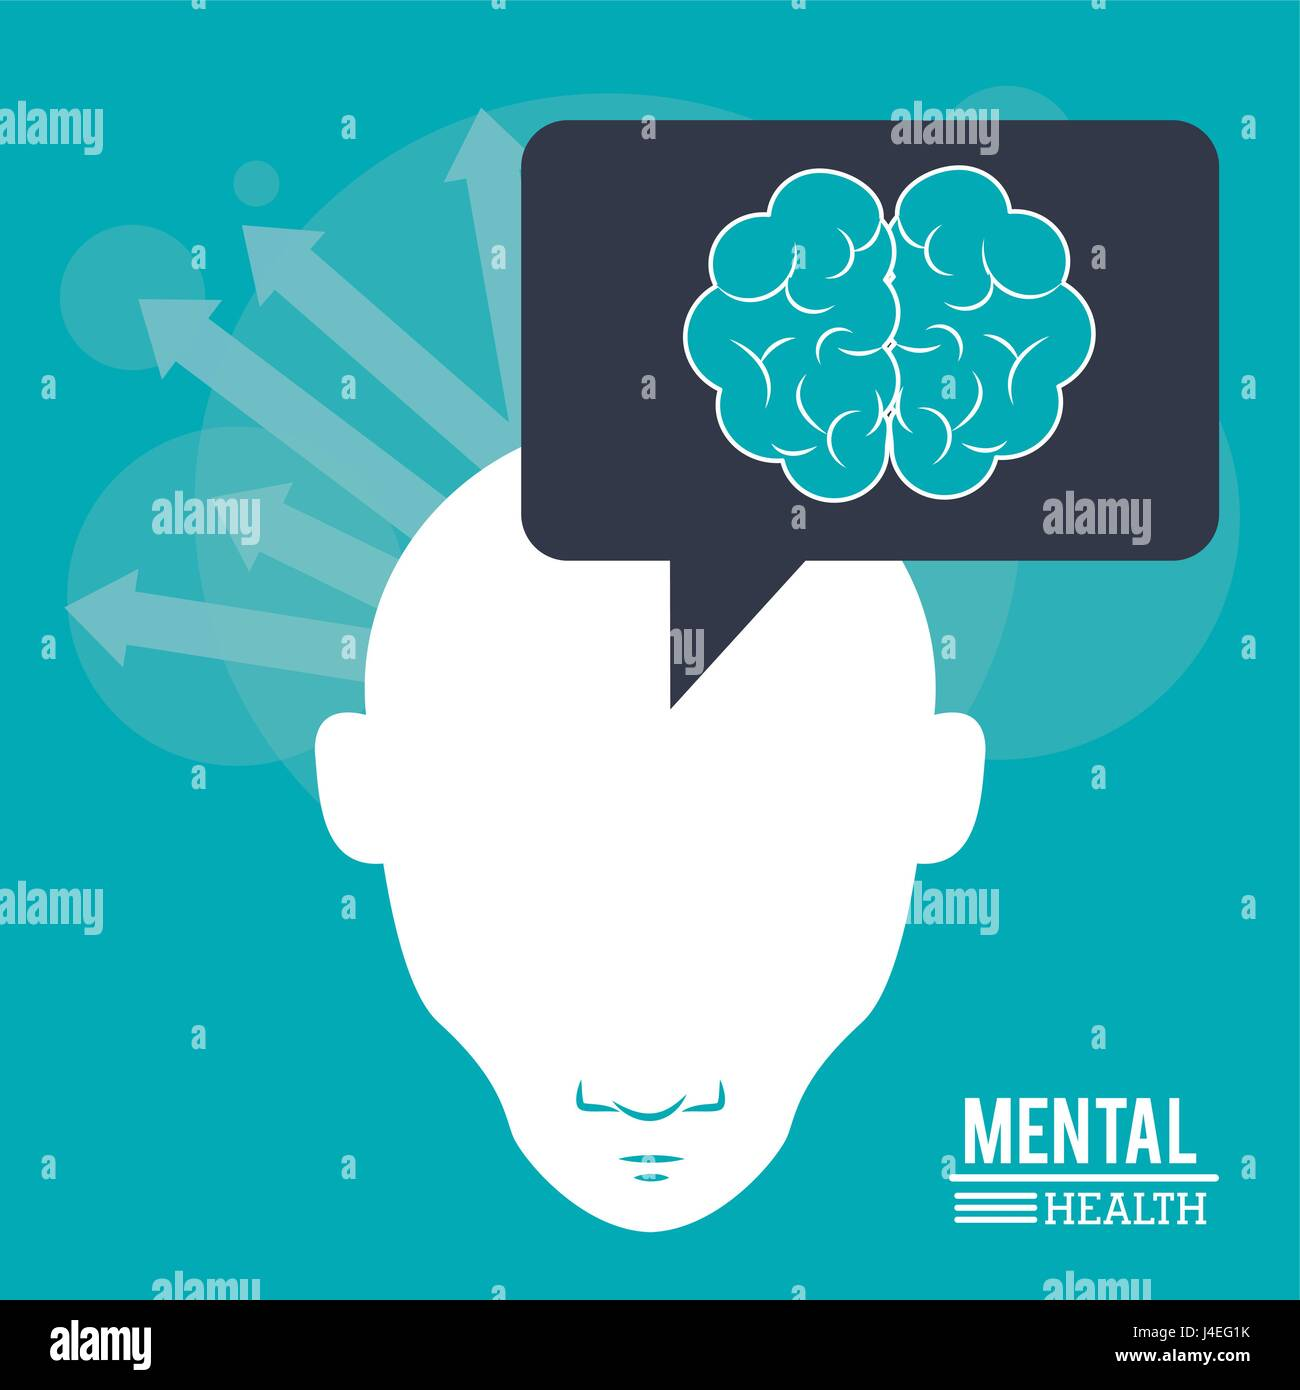 mental health, human head with brain arrows thinking image - Stock Image